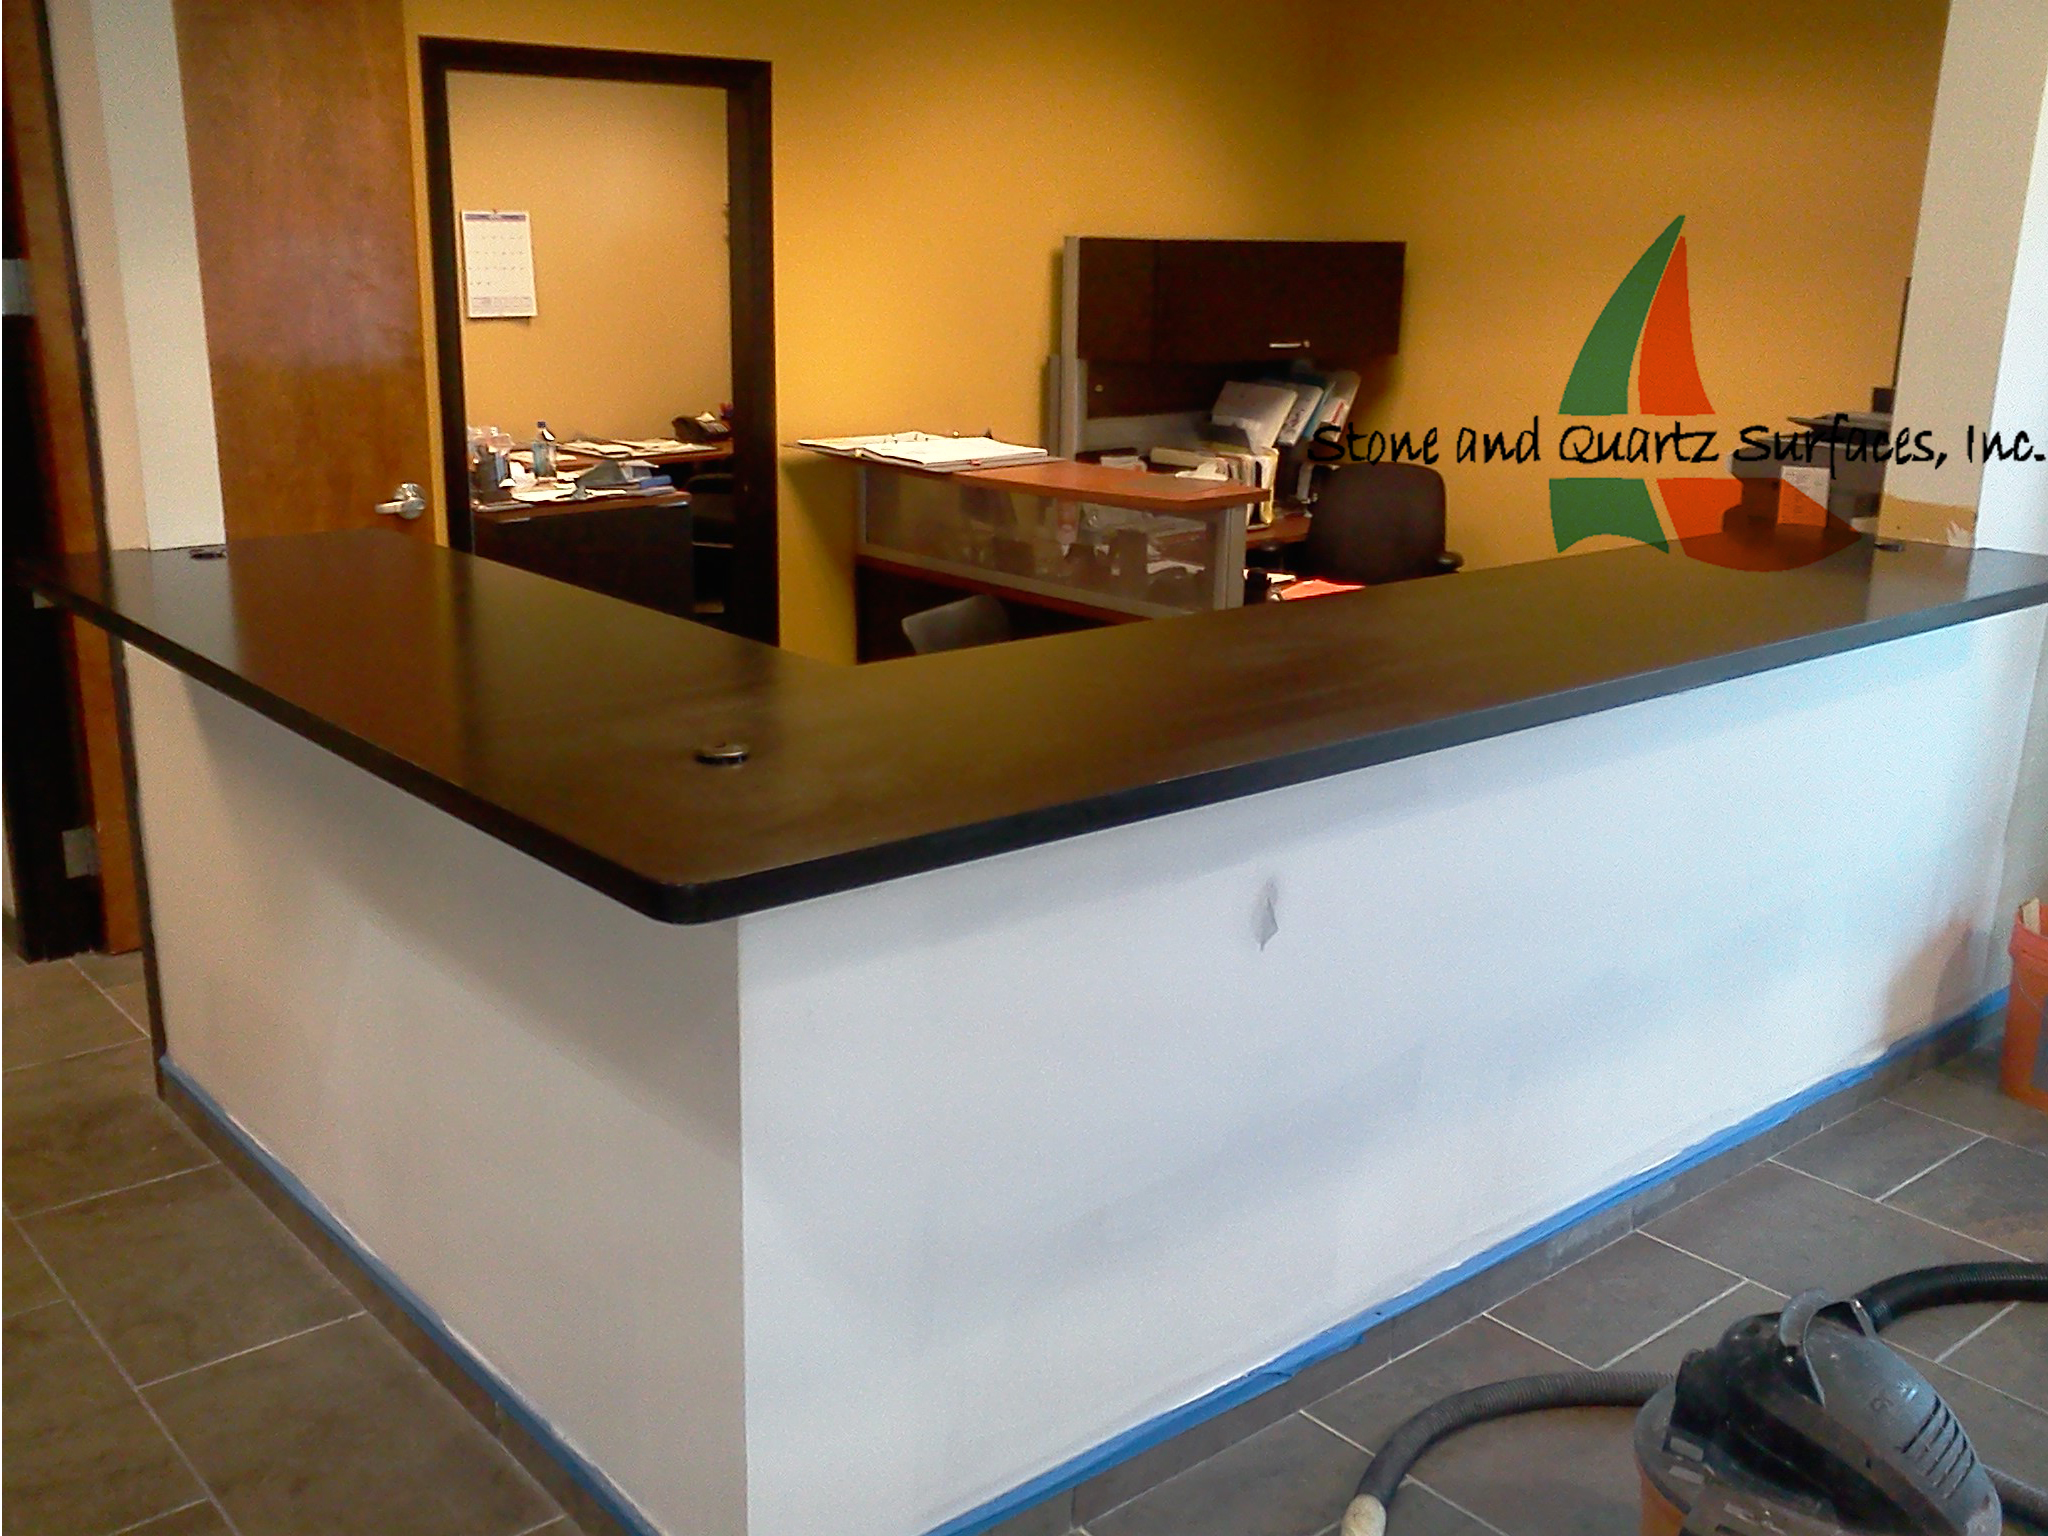 Countertops Fabricator Palm Beach FL